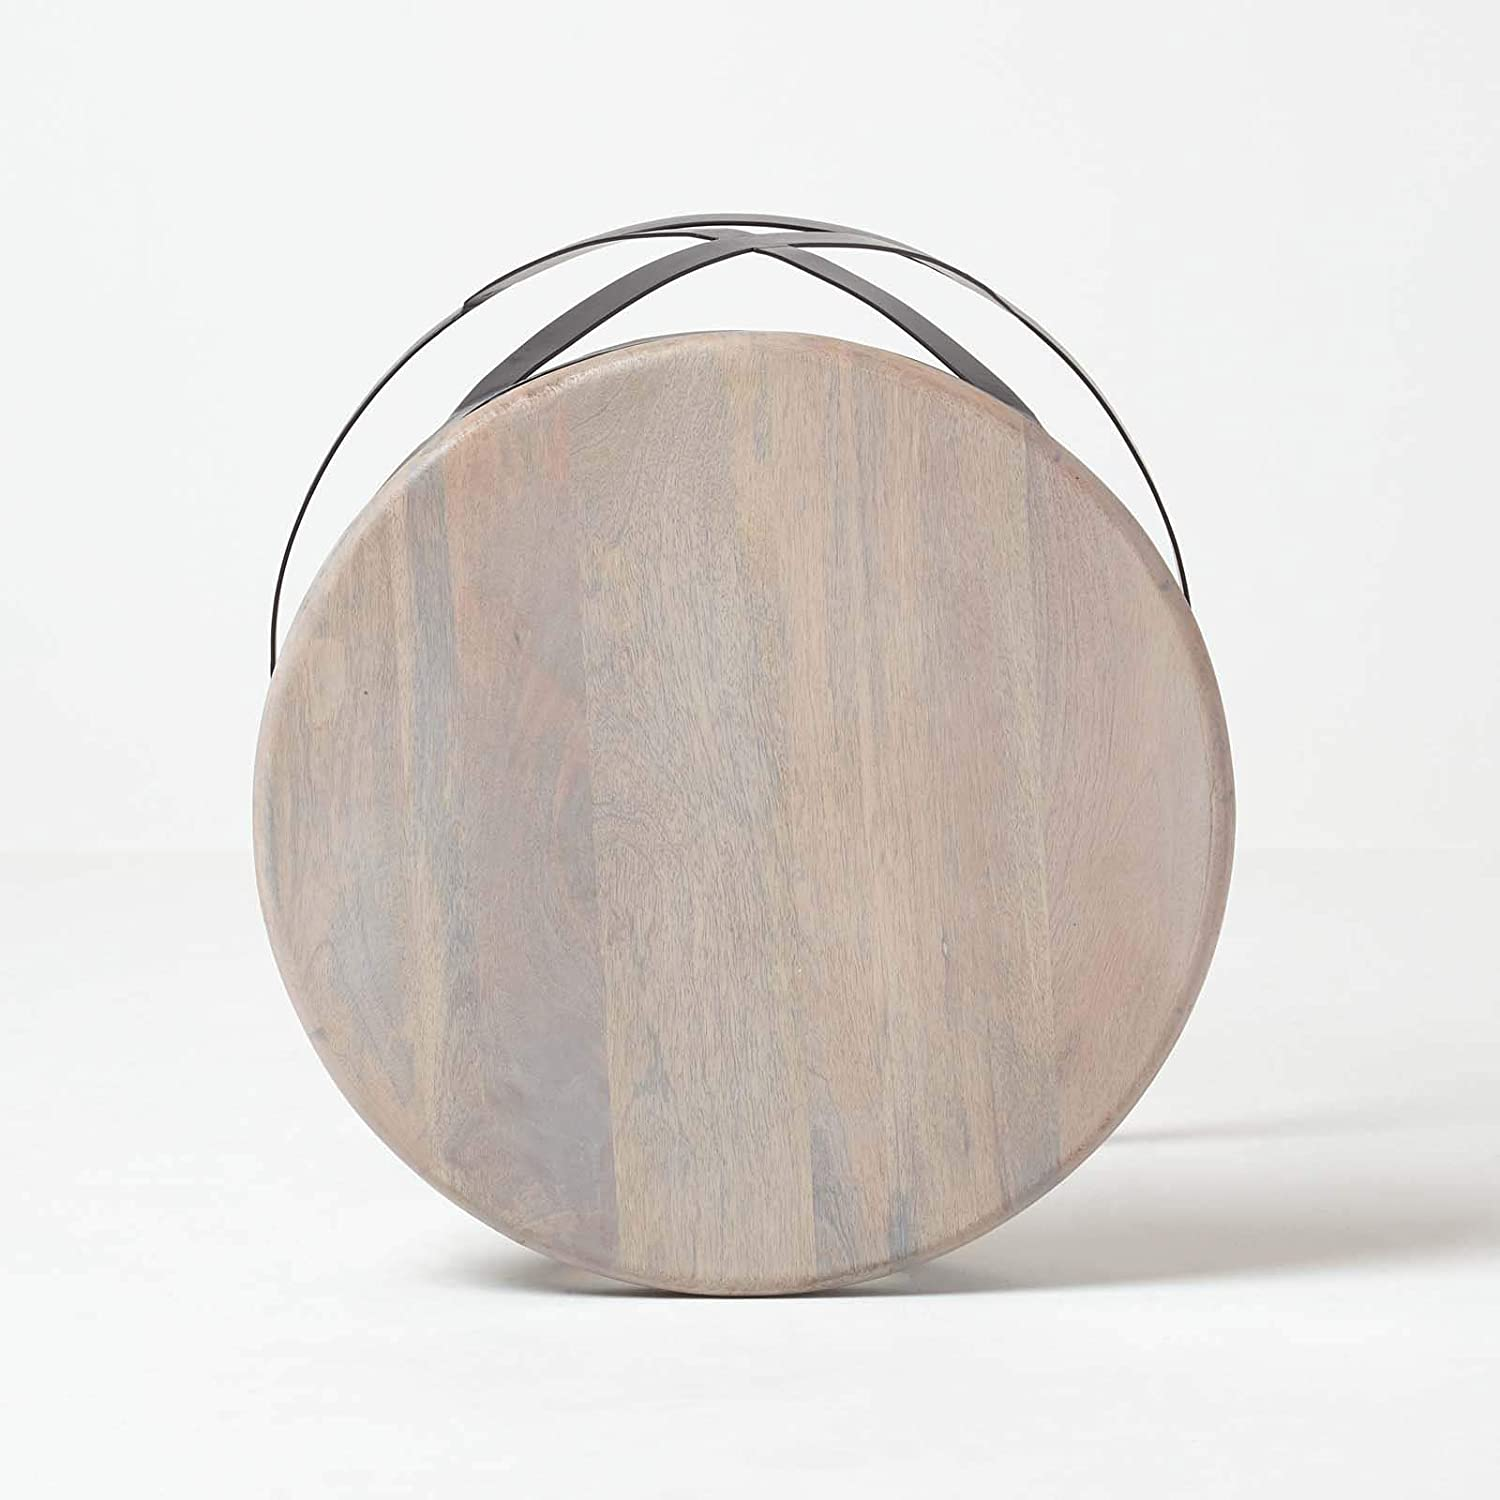 Homescapes Natural Brown Soho Barrel Side Tables 2 Nesting Tables Handcrafted From 100/% Acacia Wood /& Solid Steel Modern Style Space Saving /& Compact Side Tables or Coffee Tables 45cm H x 53cm W